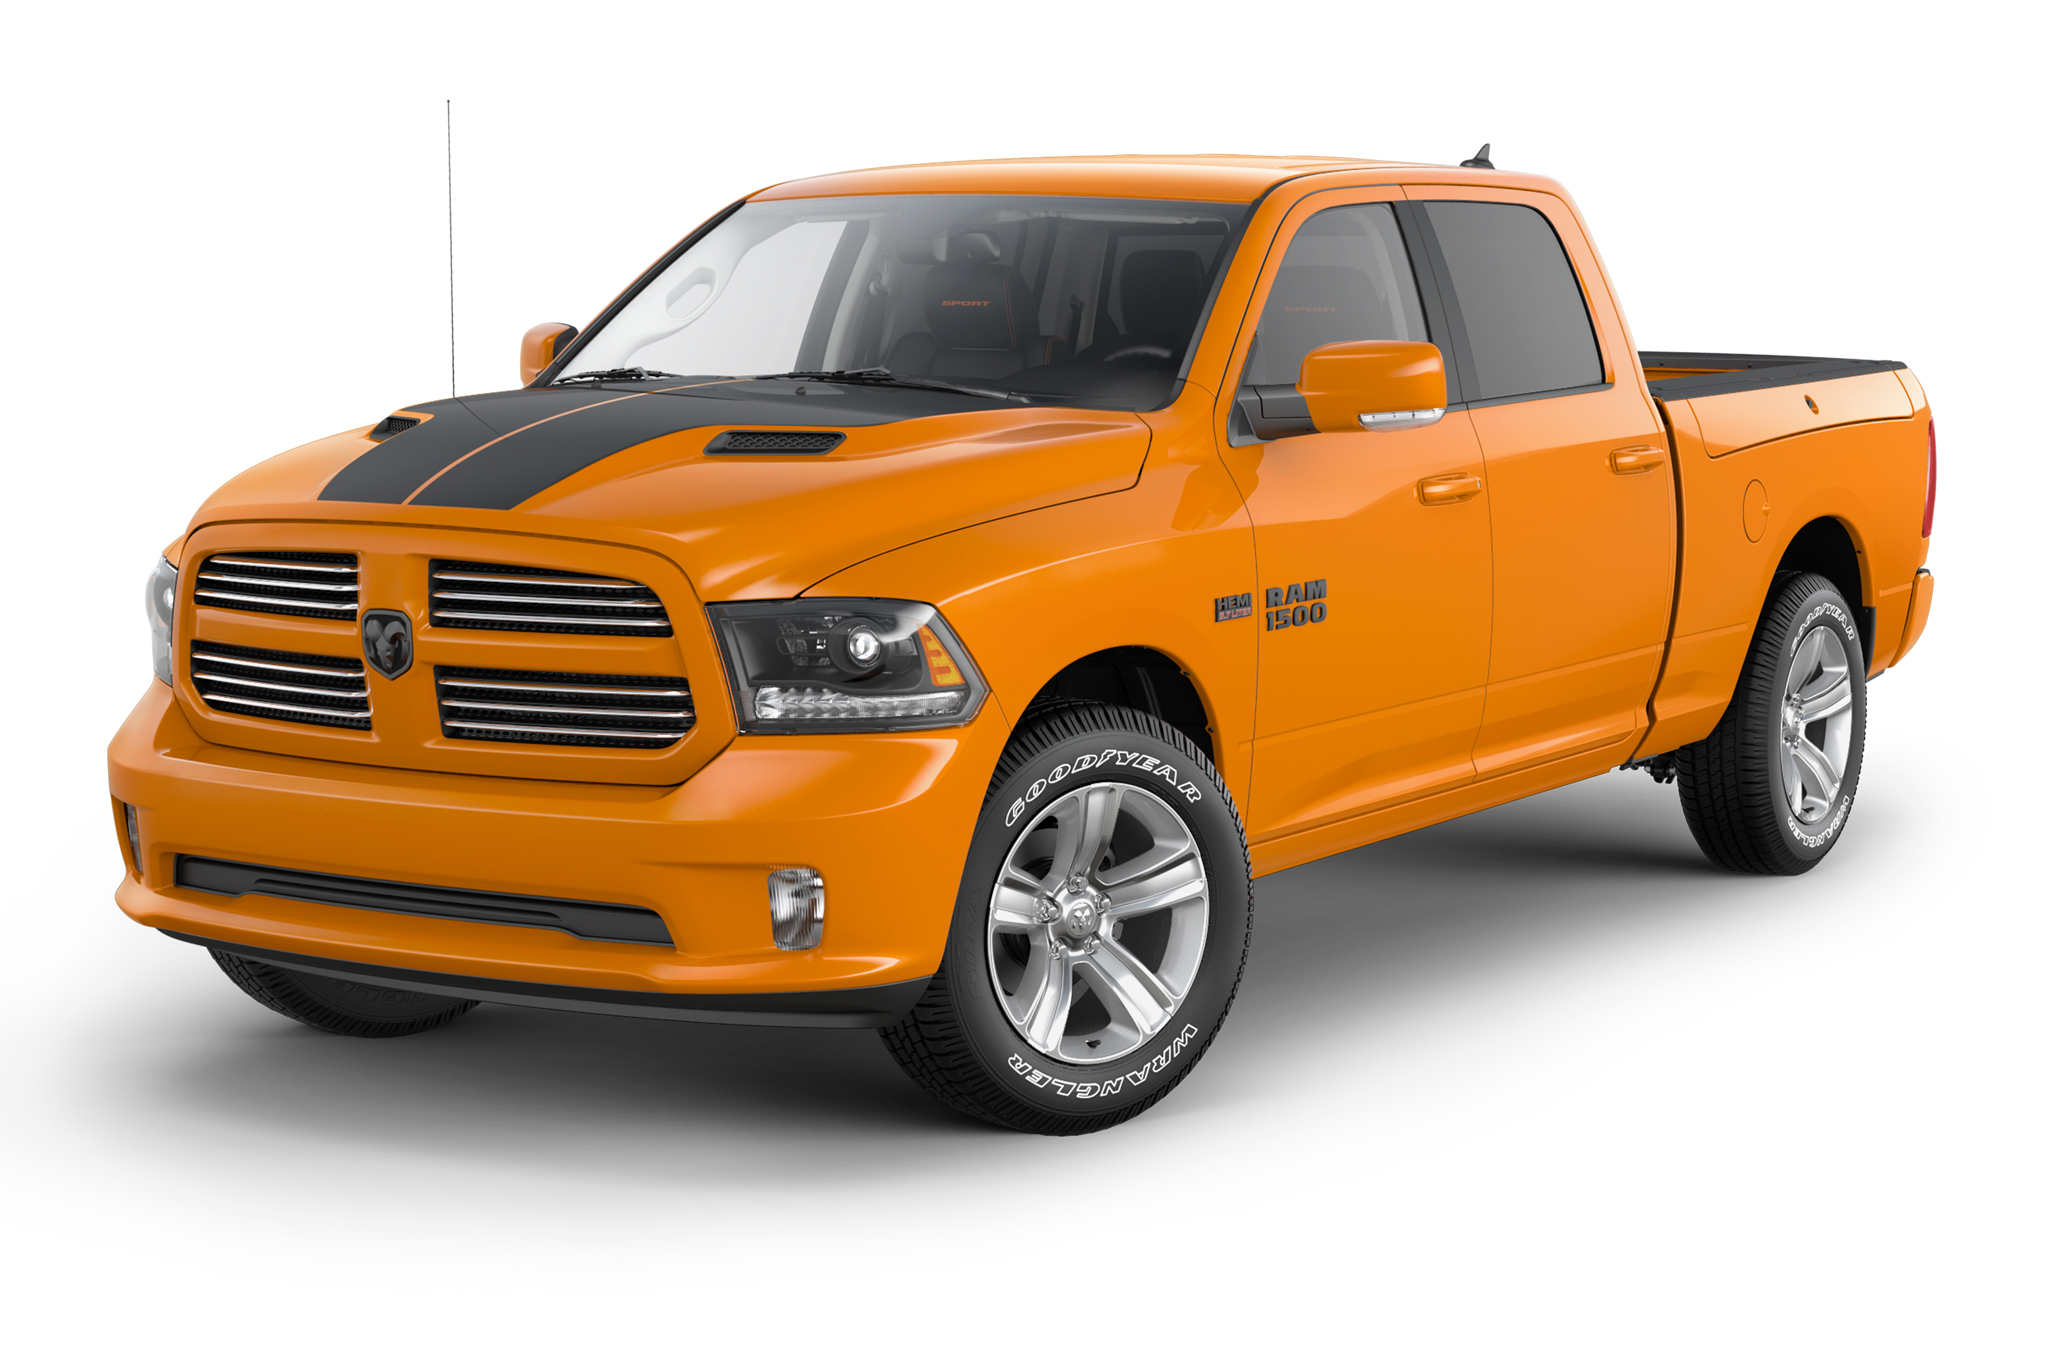 Limited-Edition Orange and Black 2015 Ram 1500 Trucks Coming in Spring